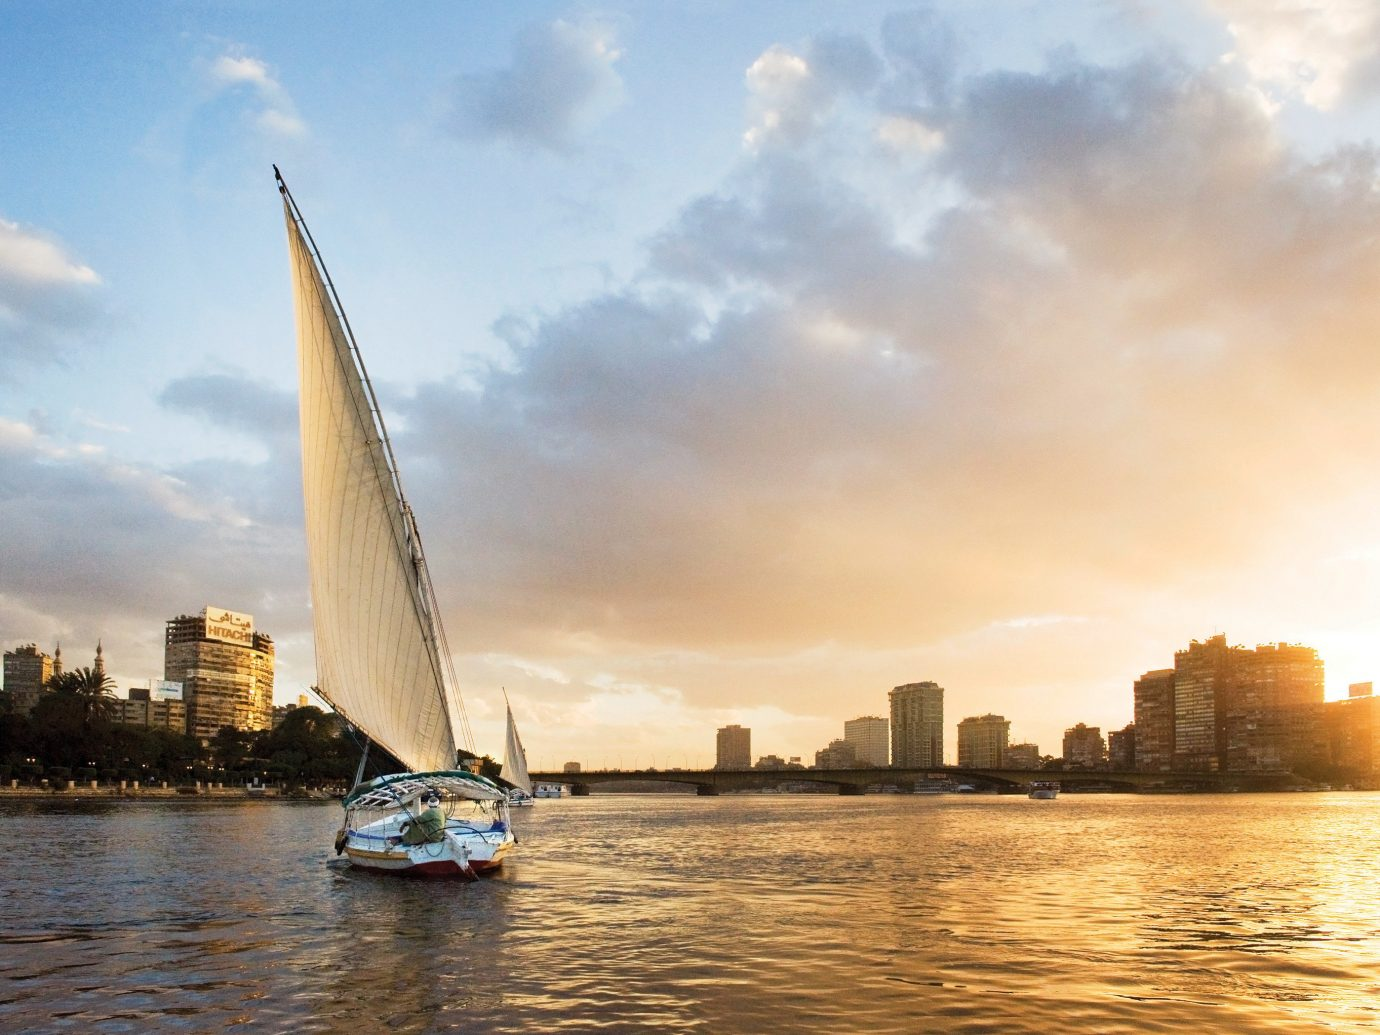 Lakes + Rivers Landmarks sky water outdoor Boat sailboat reflection horizon vehicle sail Sea morning cityscape River evening skyline dusk sailing vessel skyscraper sunlight Sunset waterway sailing day distance